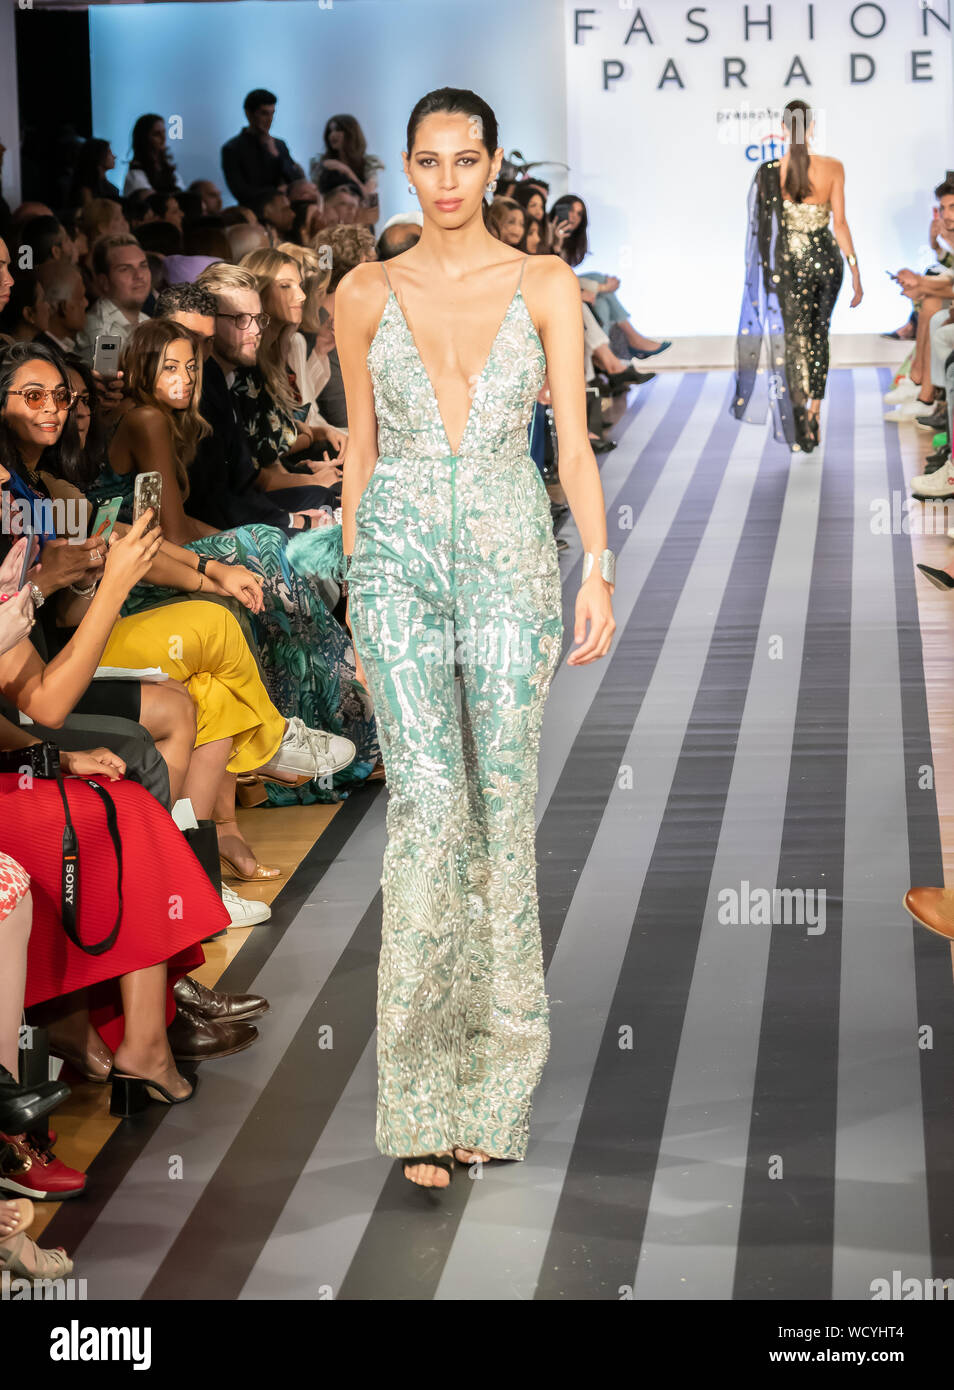 Manhattan New York Usa August 27 2019 Fashion Parade At Christie S South Asian Designs Of Ali Xeeshan Delhi Vintage Co Elan By Khadijah Shah Stock Photo 266138100 Alamy